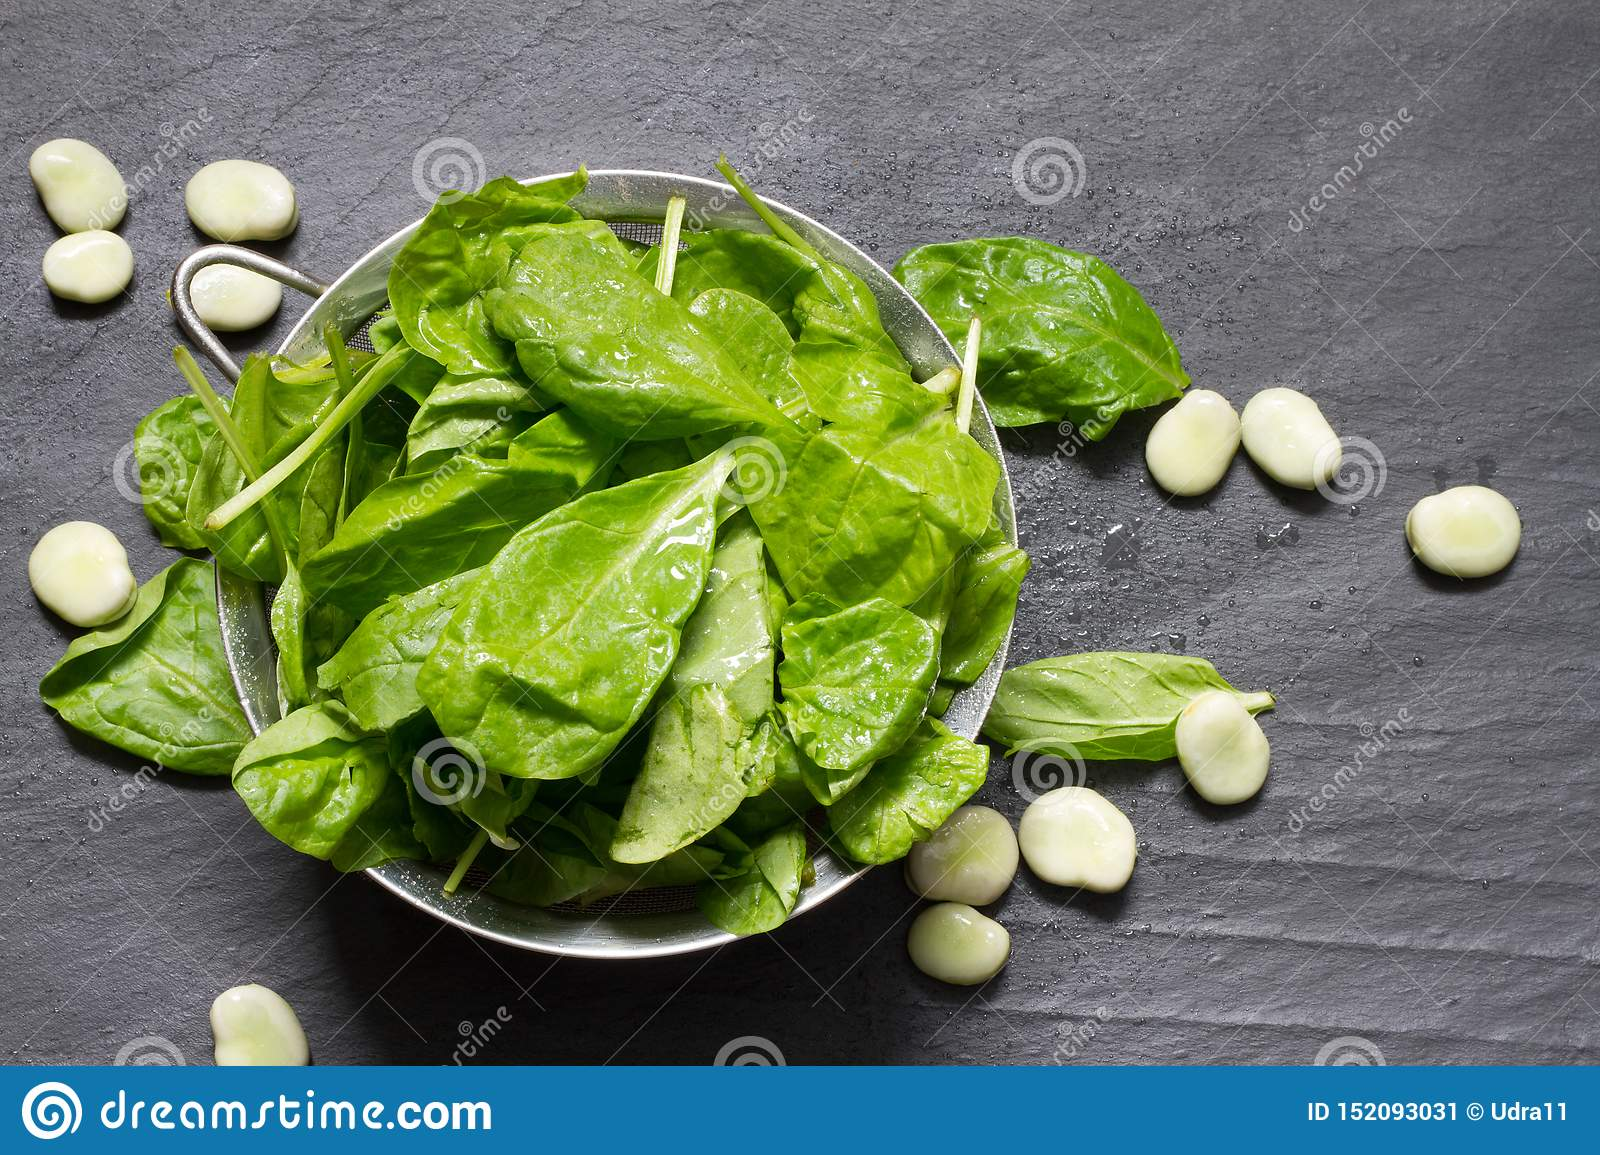 Broad bean and spinach healthy diet food